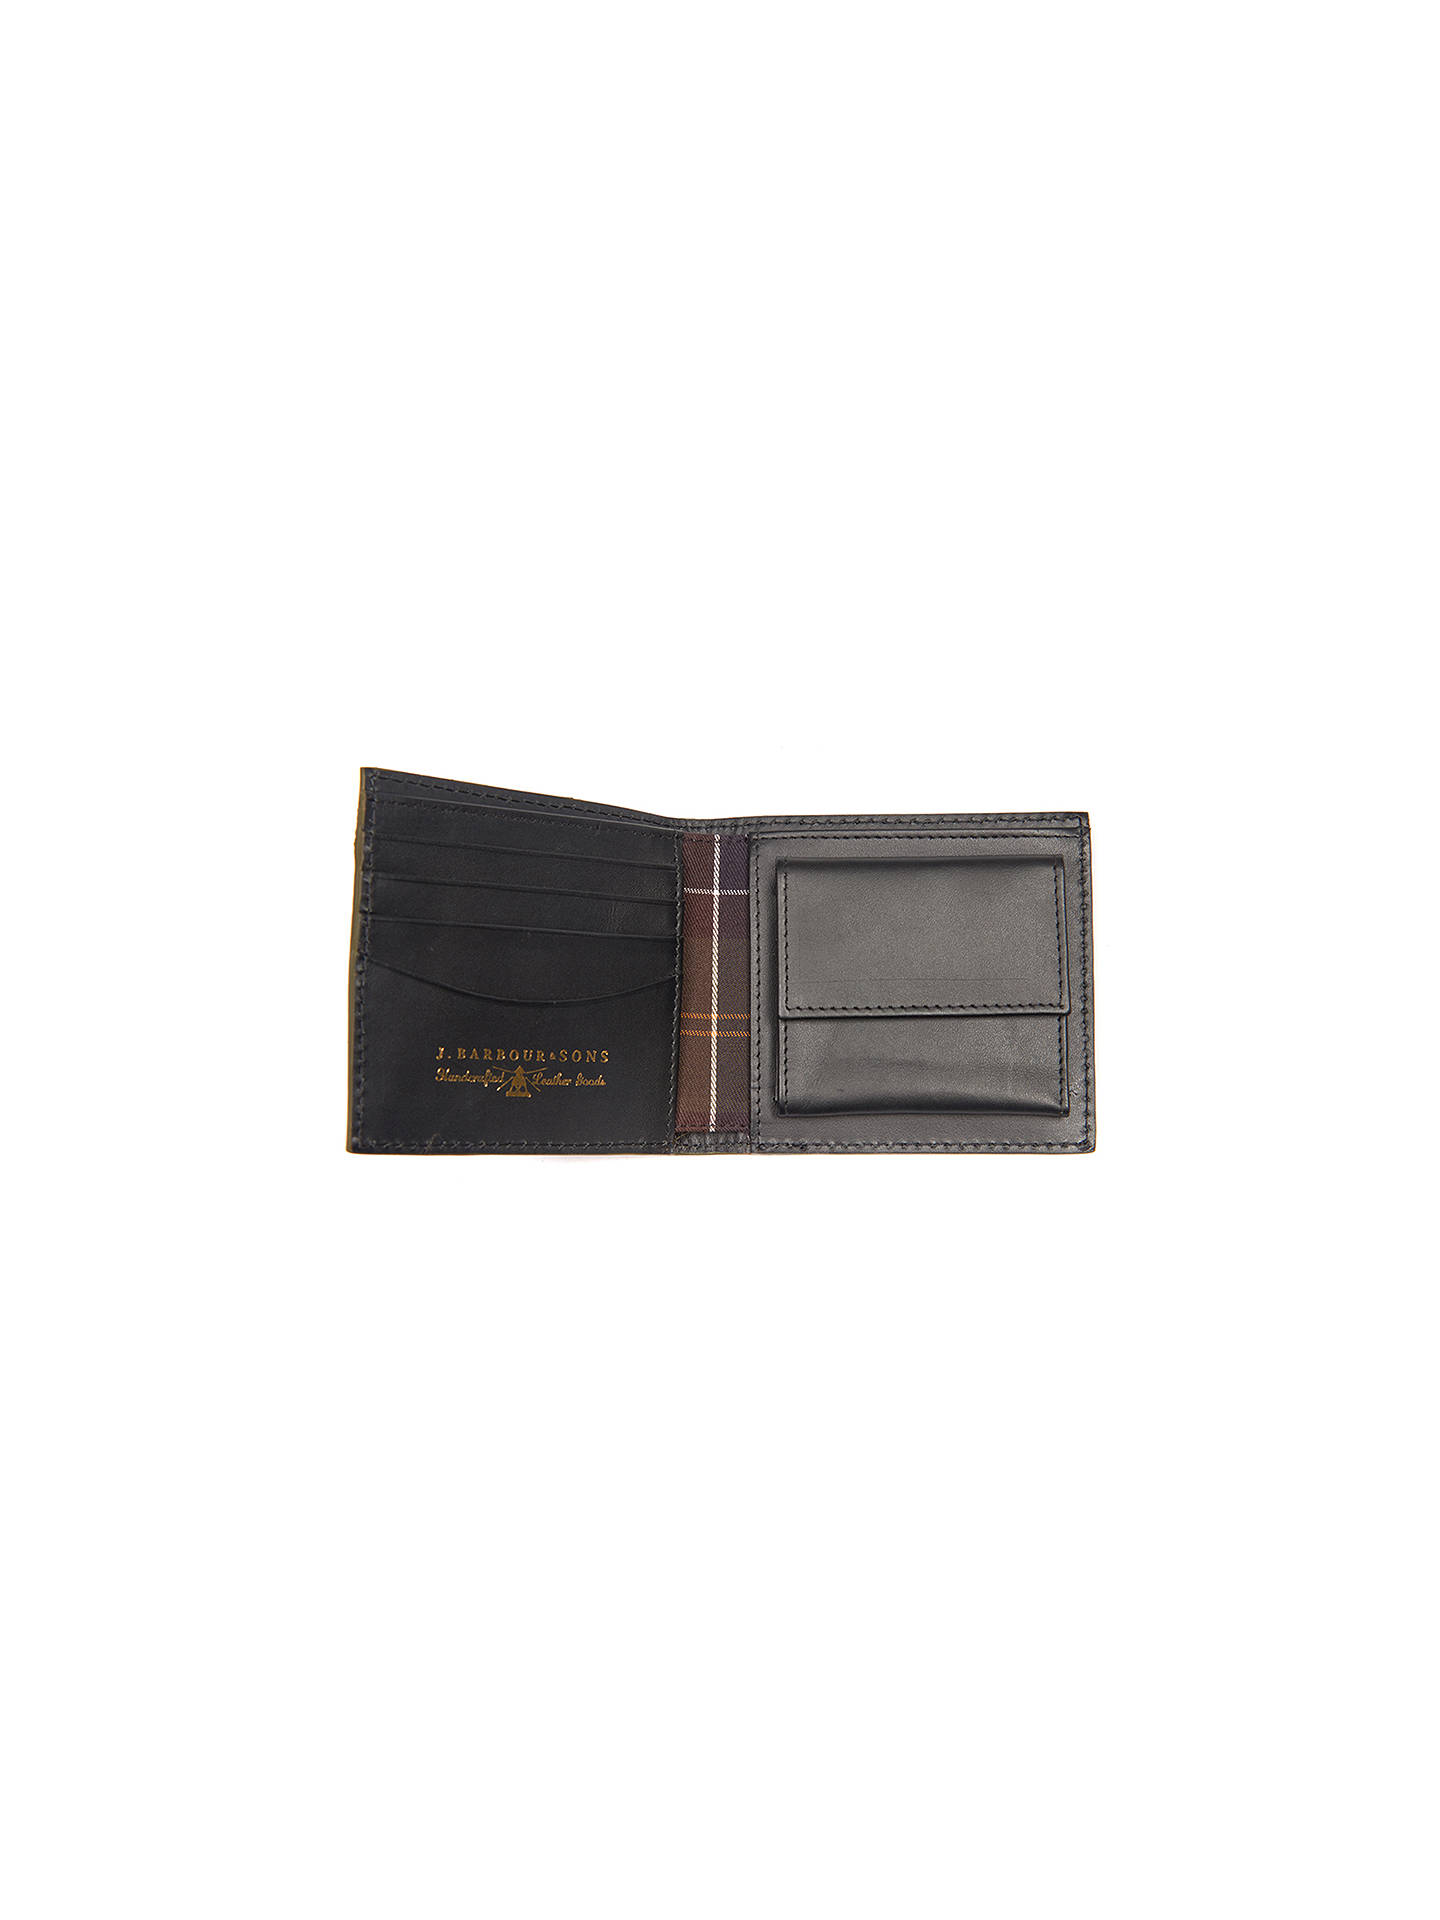 95cb01a1 ... Buy Barbour Leather Coin Wallet, Black Online at johnlewis.com ...